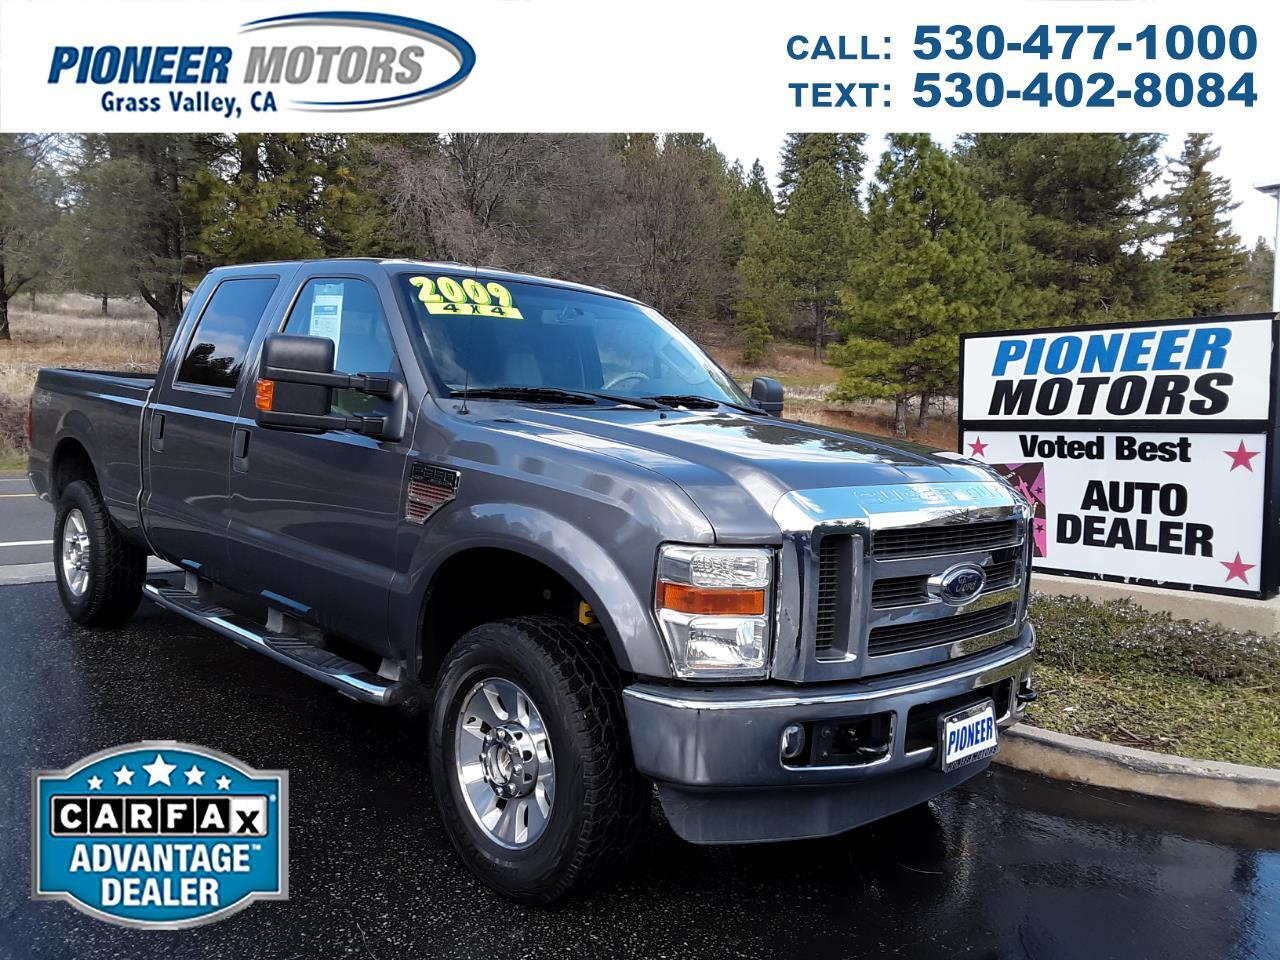 2009 Ford F-250 SD Lariat Super Duty Crew Cab 4WD